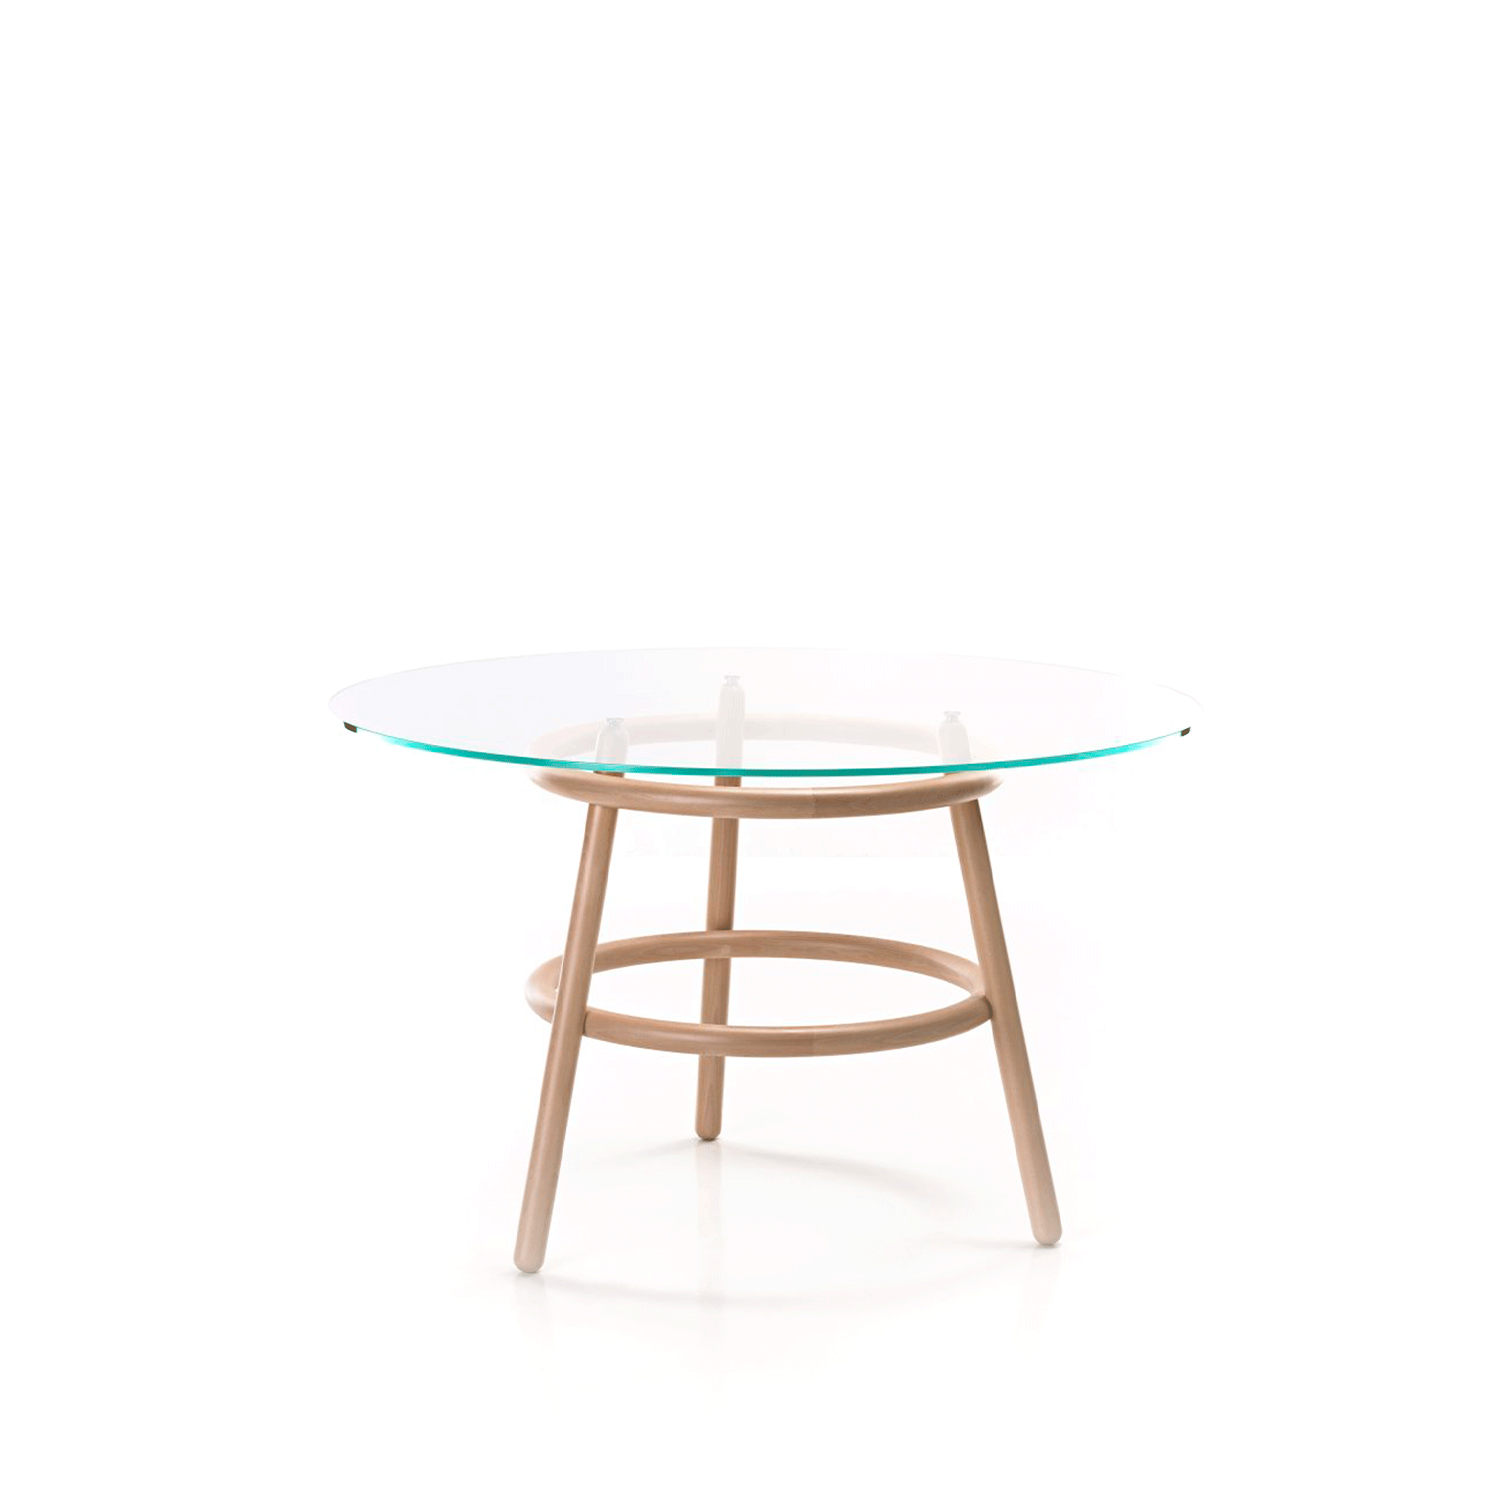 Magistretti 03 02 Table - Magistretti 03 02 is a table designed by the designer Vico Magistretti for Gebrüder Thonet Vienna. It has a support structure in solid beech with round section elements. The base is made up of three legs intersected by two hoops of the same diameter. The round, flush top is in a tempered polished glass.  | Matter of Stuff